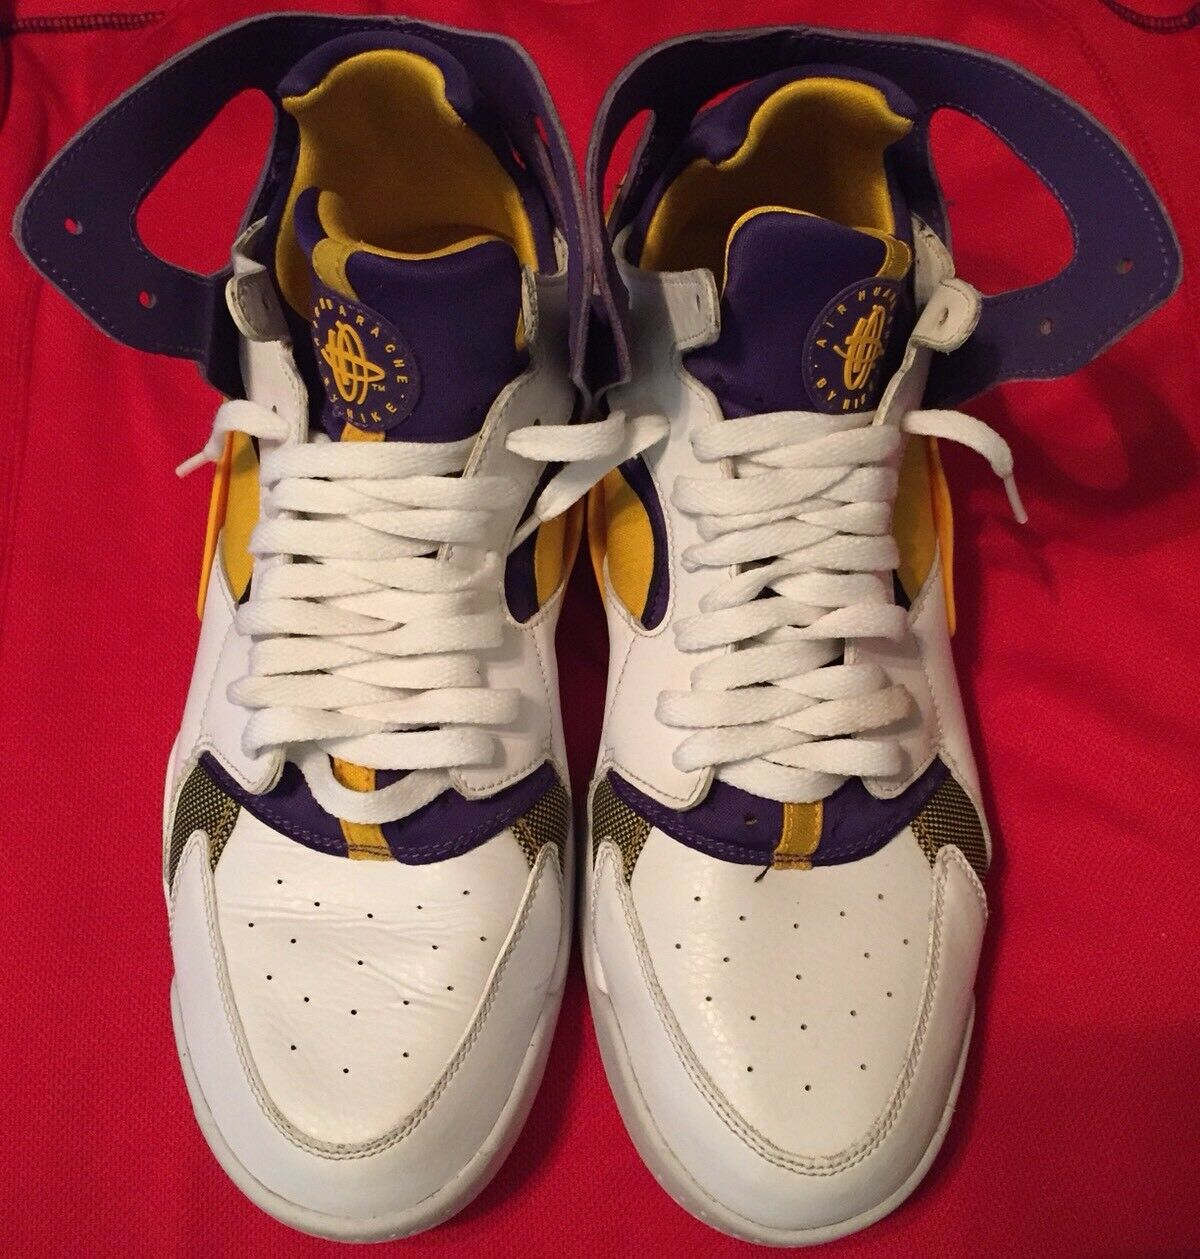 Nike air volo huarache los angeles lakers kobe bryant pe dimensioni